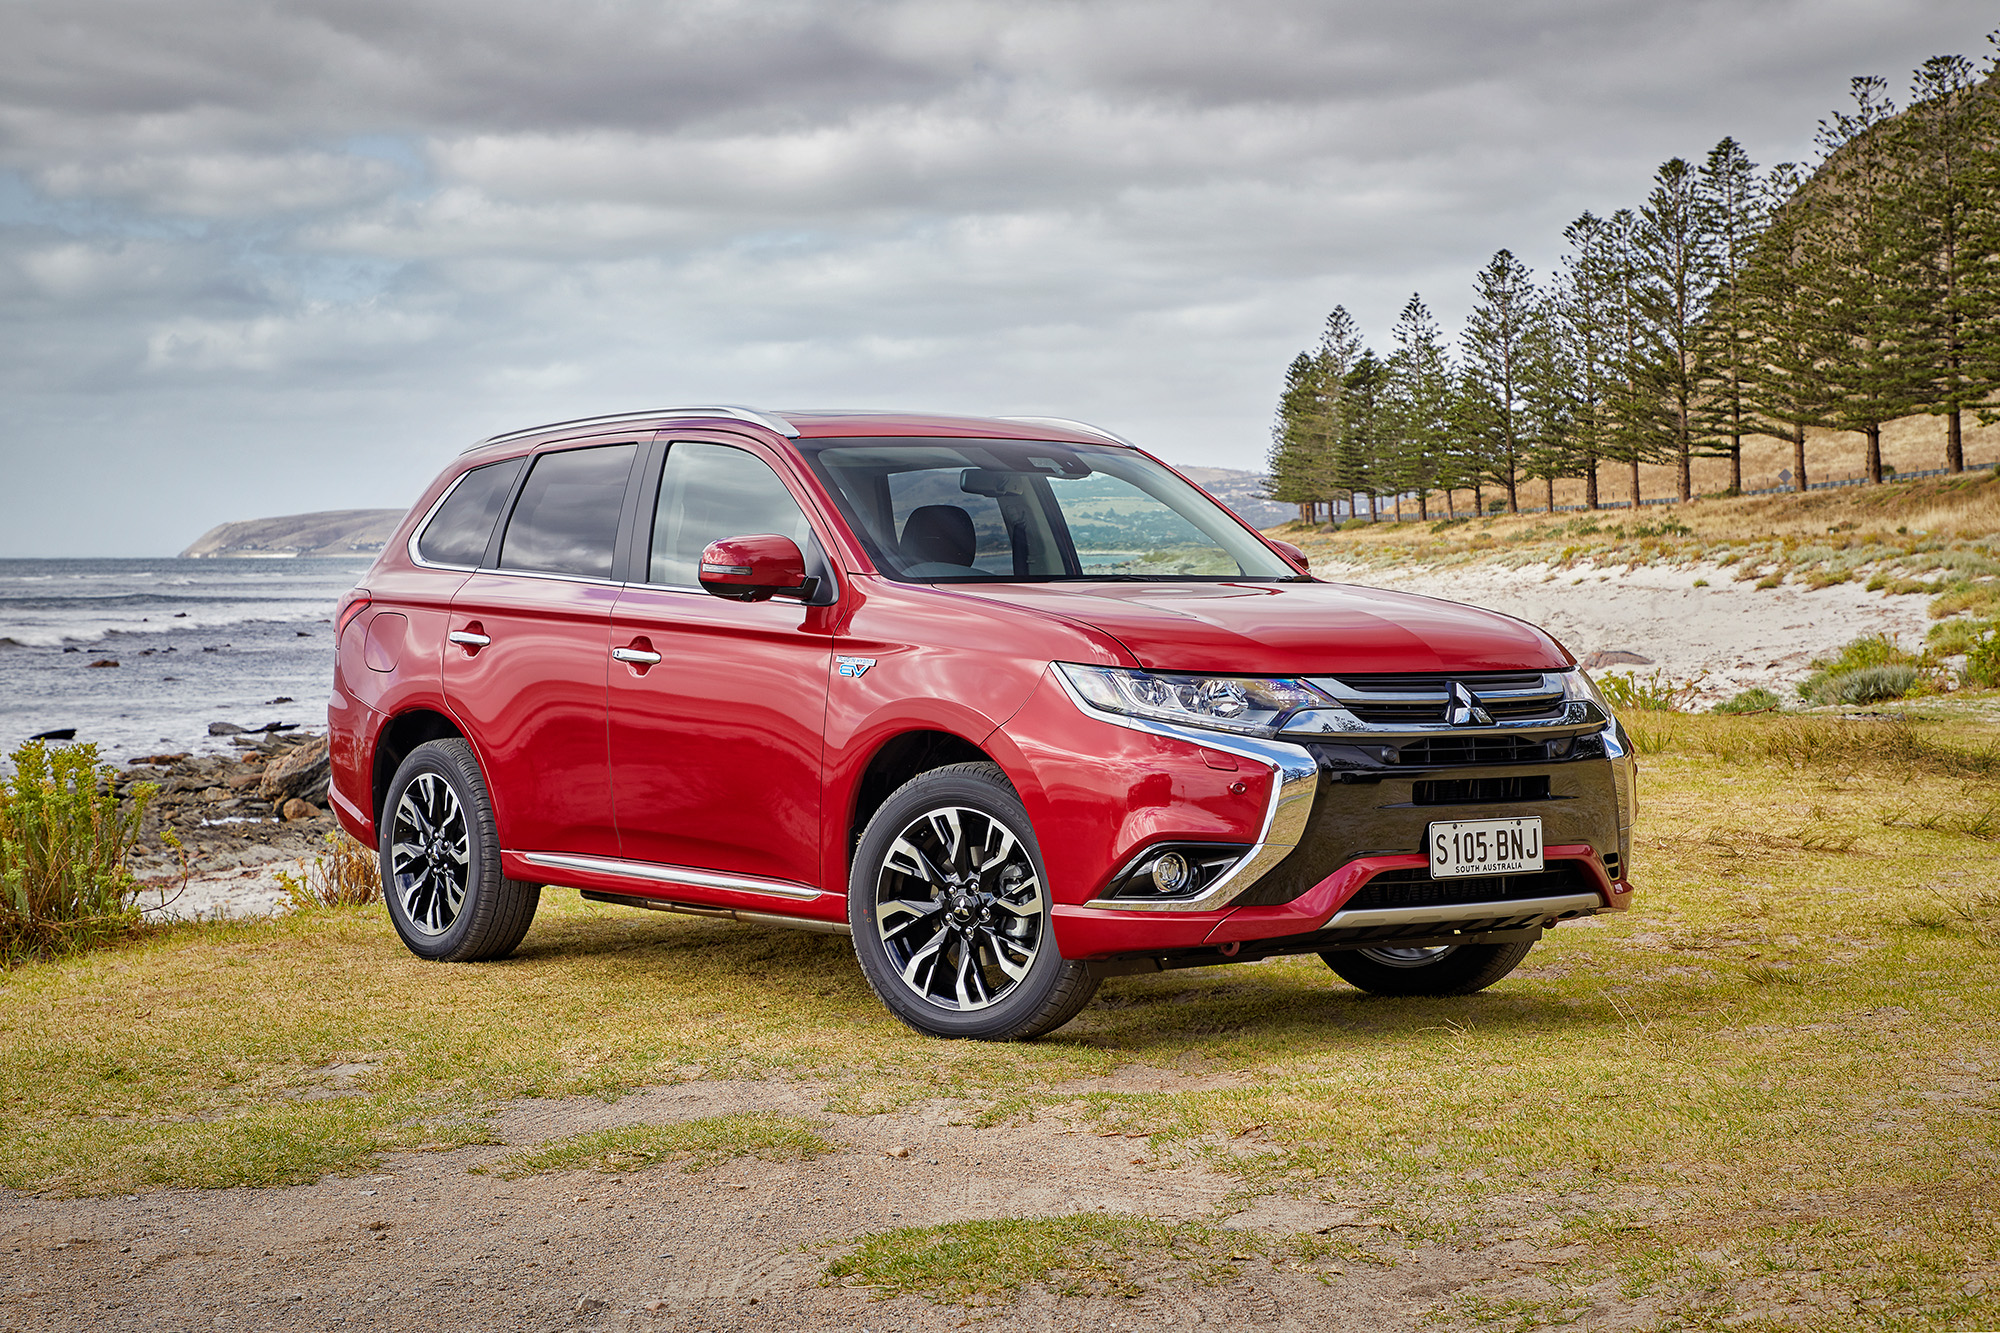 Aftermarket Car 2017 Mitsubishi Outlander Phev Review - Photos | Caradvice